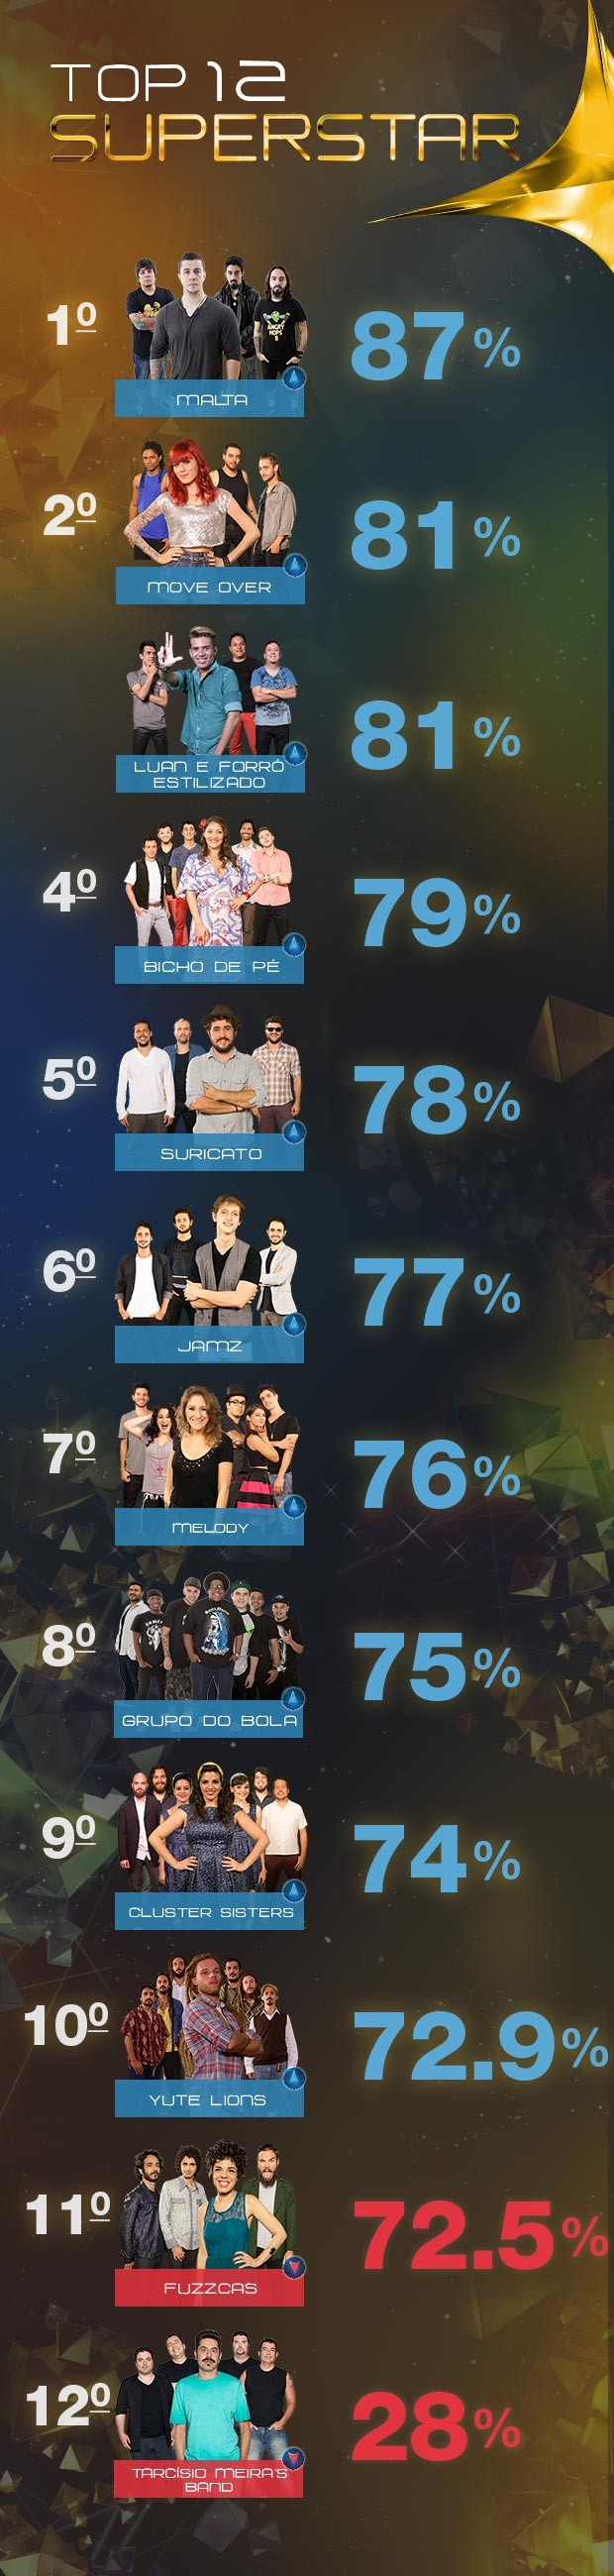 Resumo Top 12 (Foto: SuperStar/TV Globo)